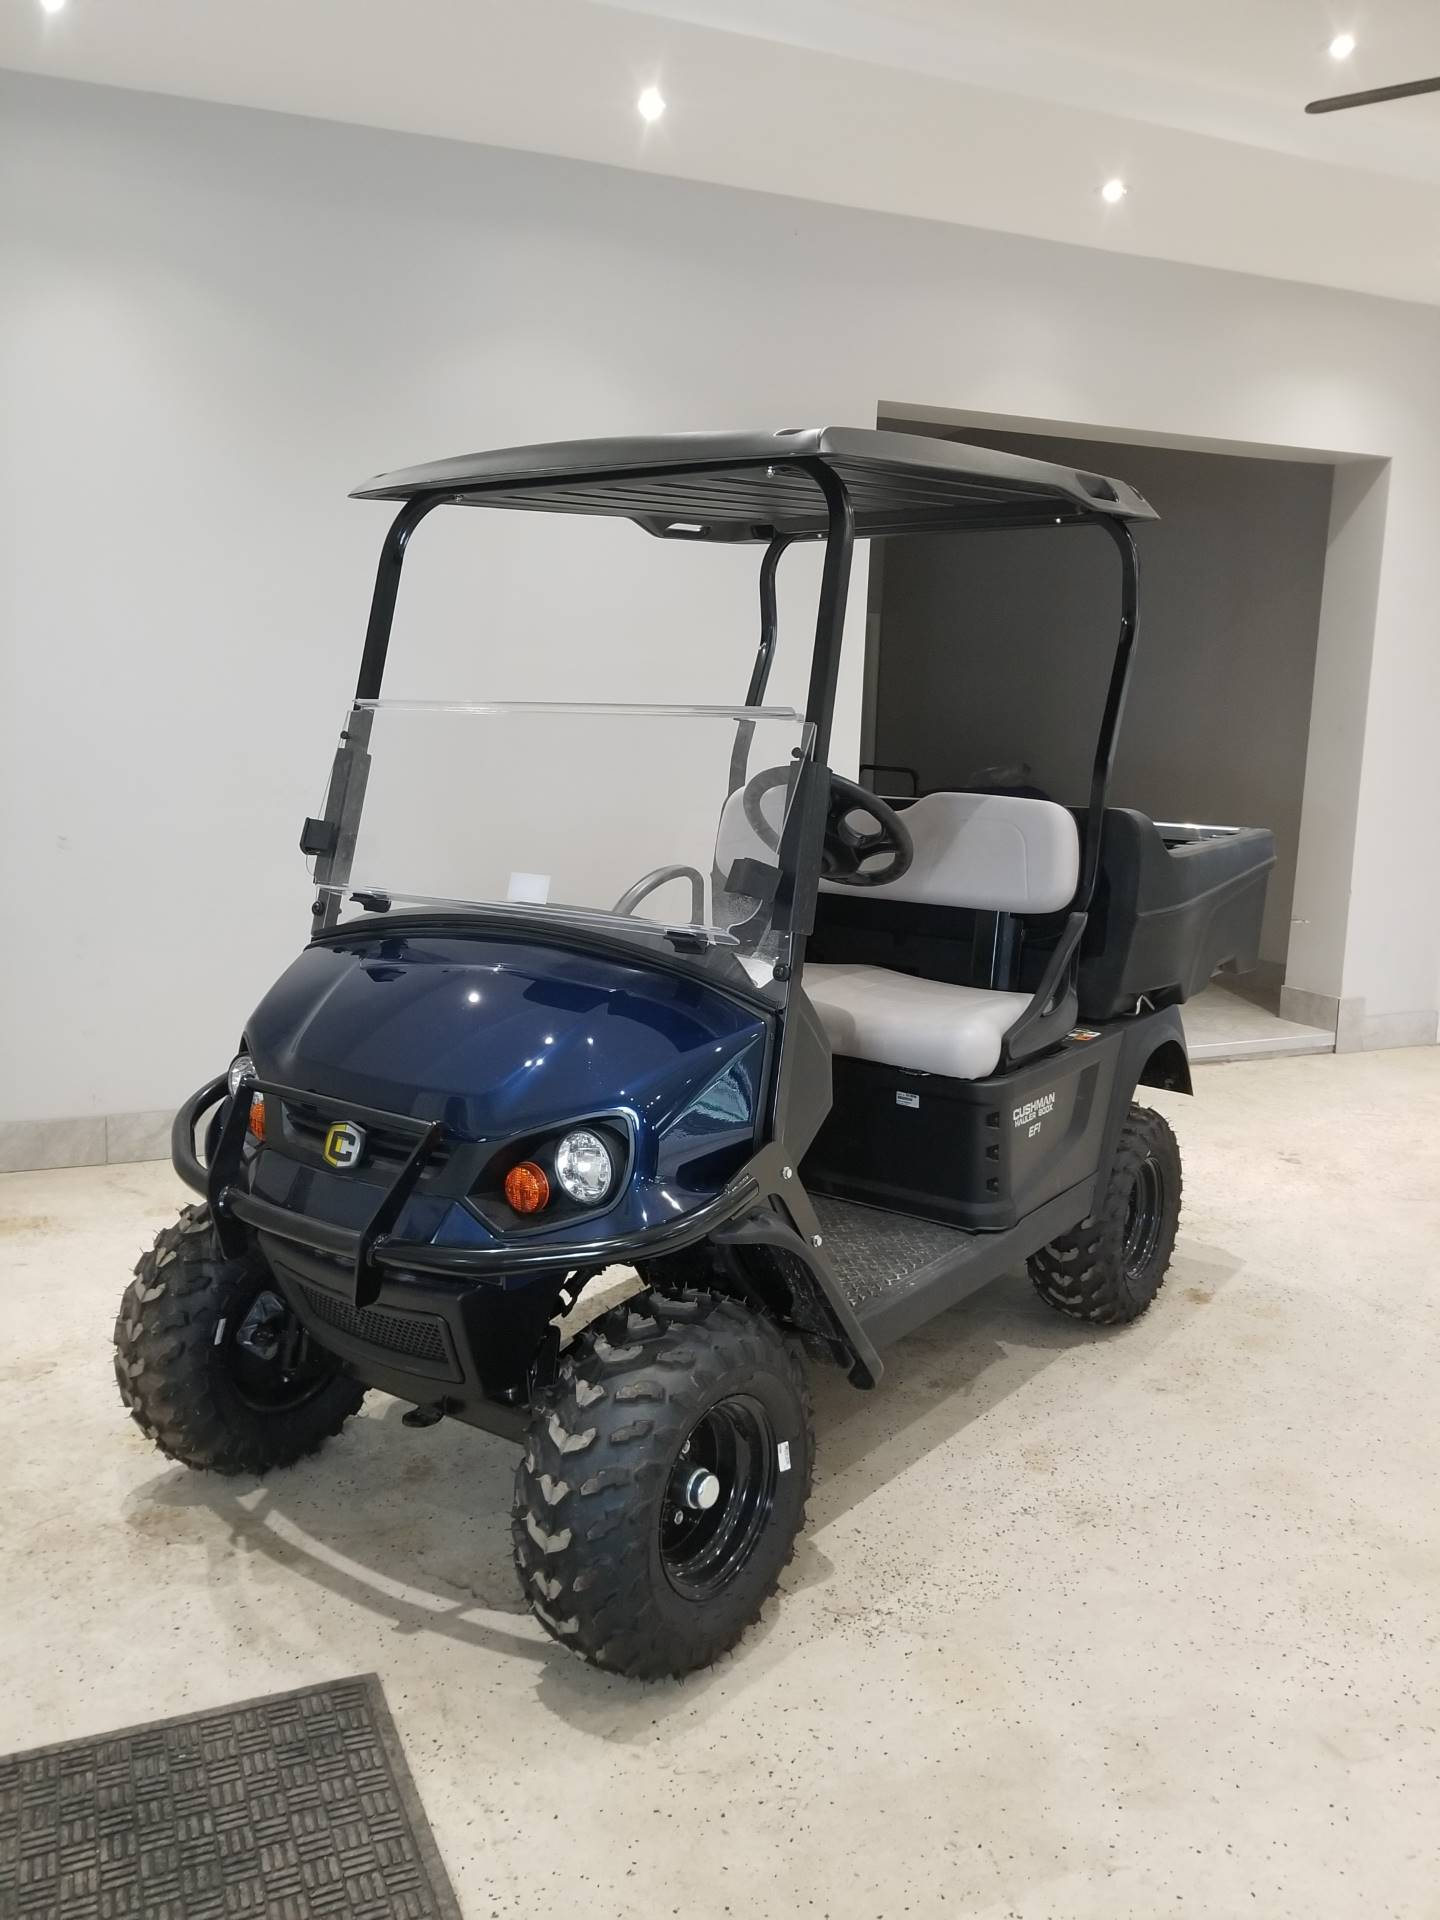 2019 Cushman Hauler 800X EFI Gas in Binghamton, New York - Photo 1